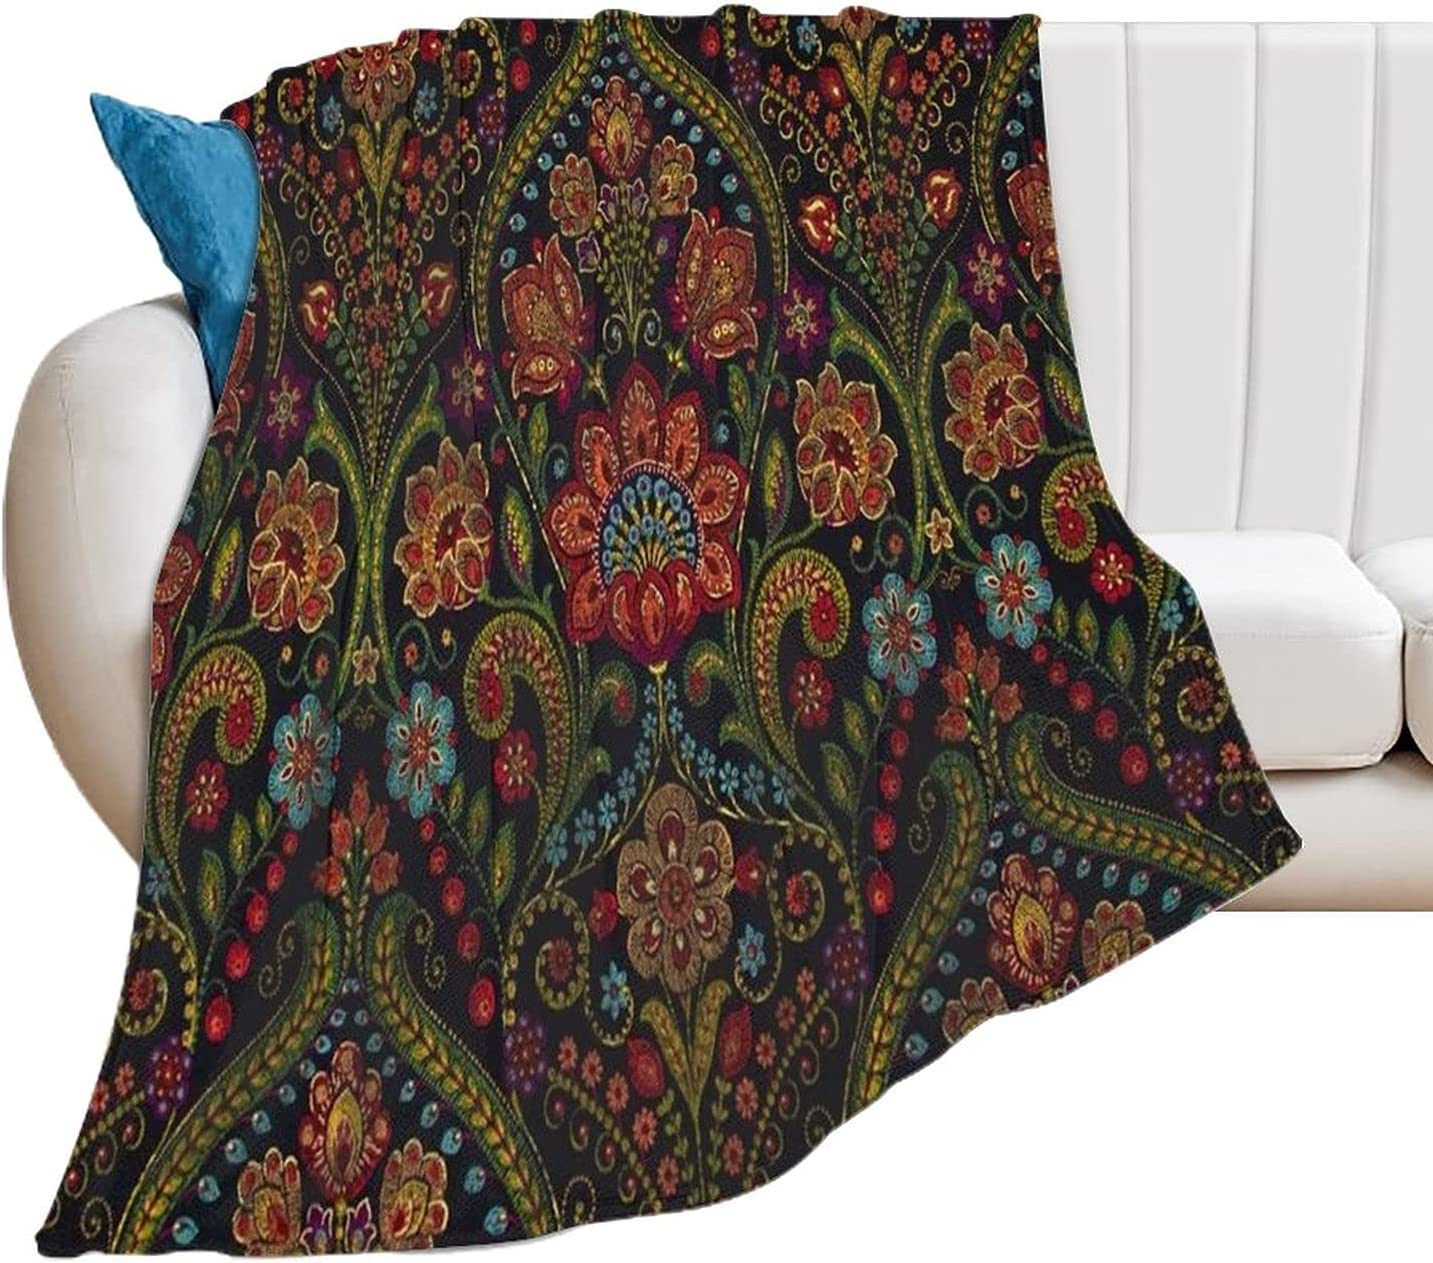 GOUTUO Blanket Plant New product! New type and Animal Graphic Design Customize Japan's largest assortment Pattern